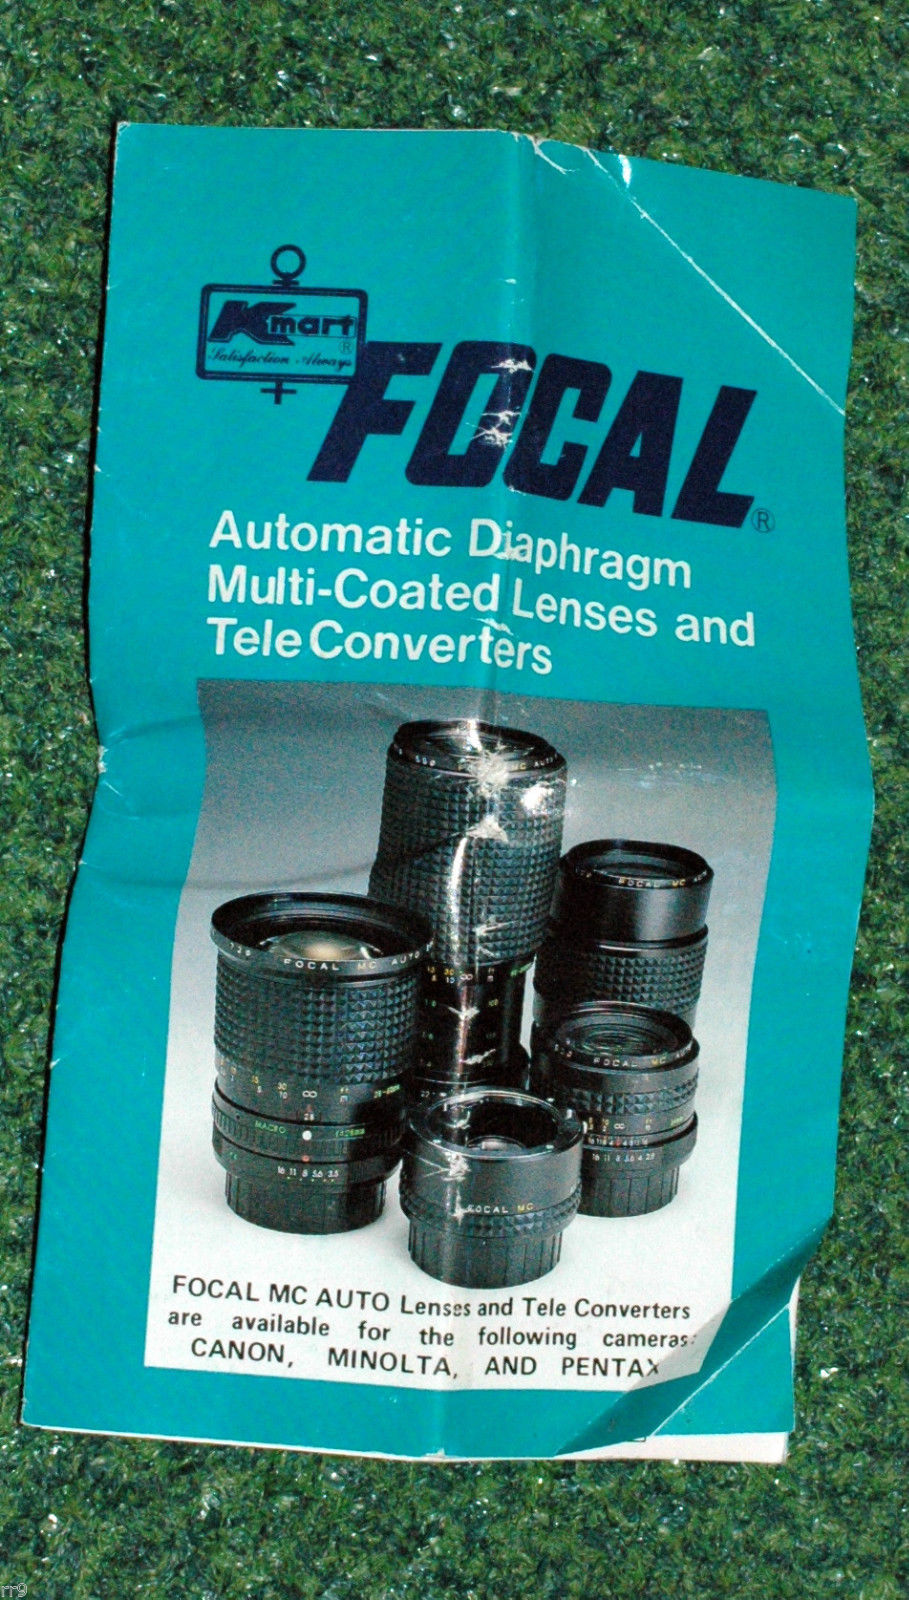 Primary image for Kmart Focal Automatic Diaphragm Lenses & Tele Converters Instruction Booklet